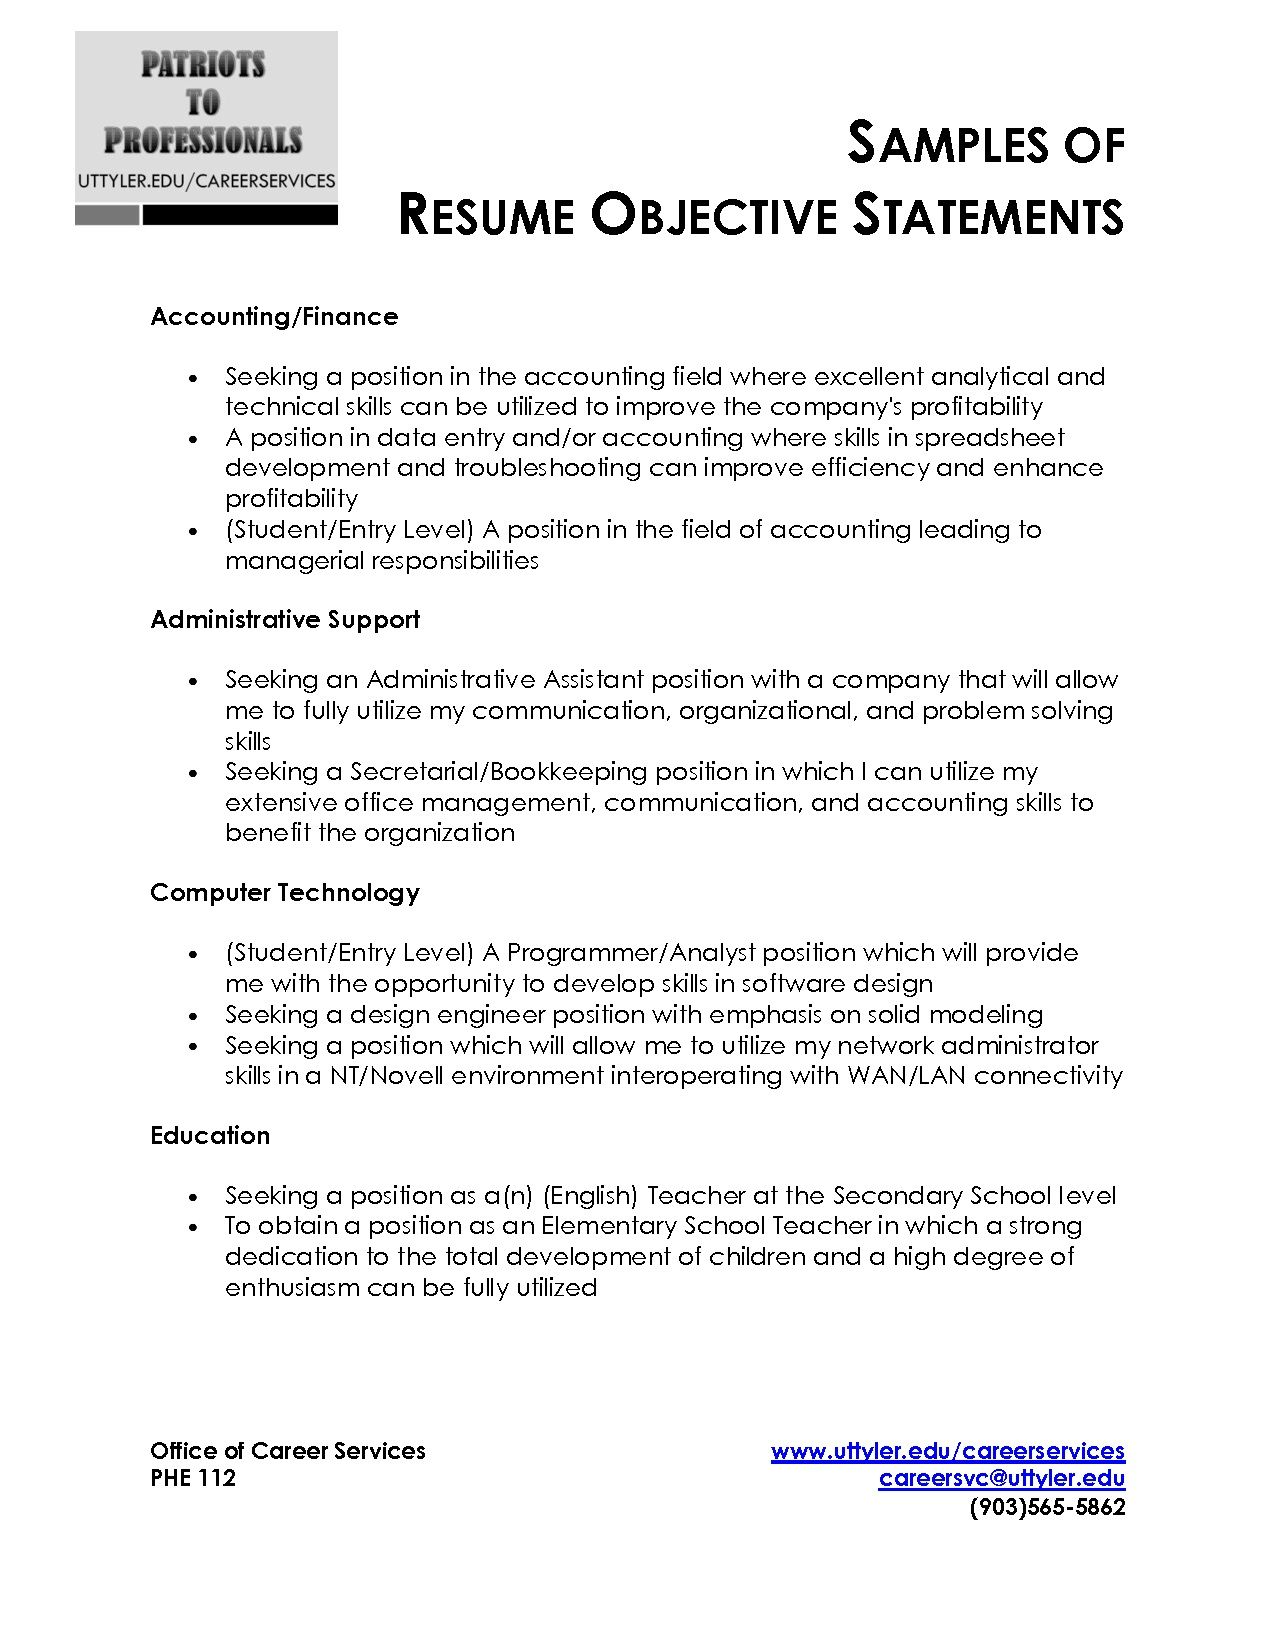 General Resume Objective Statements Sample Resume Objective Statement  Adsbygoogle  Window